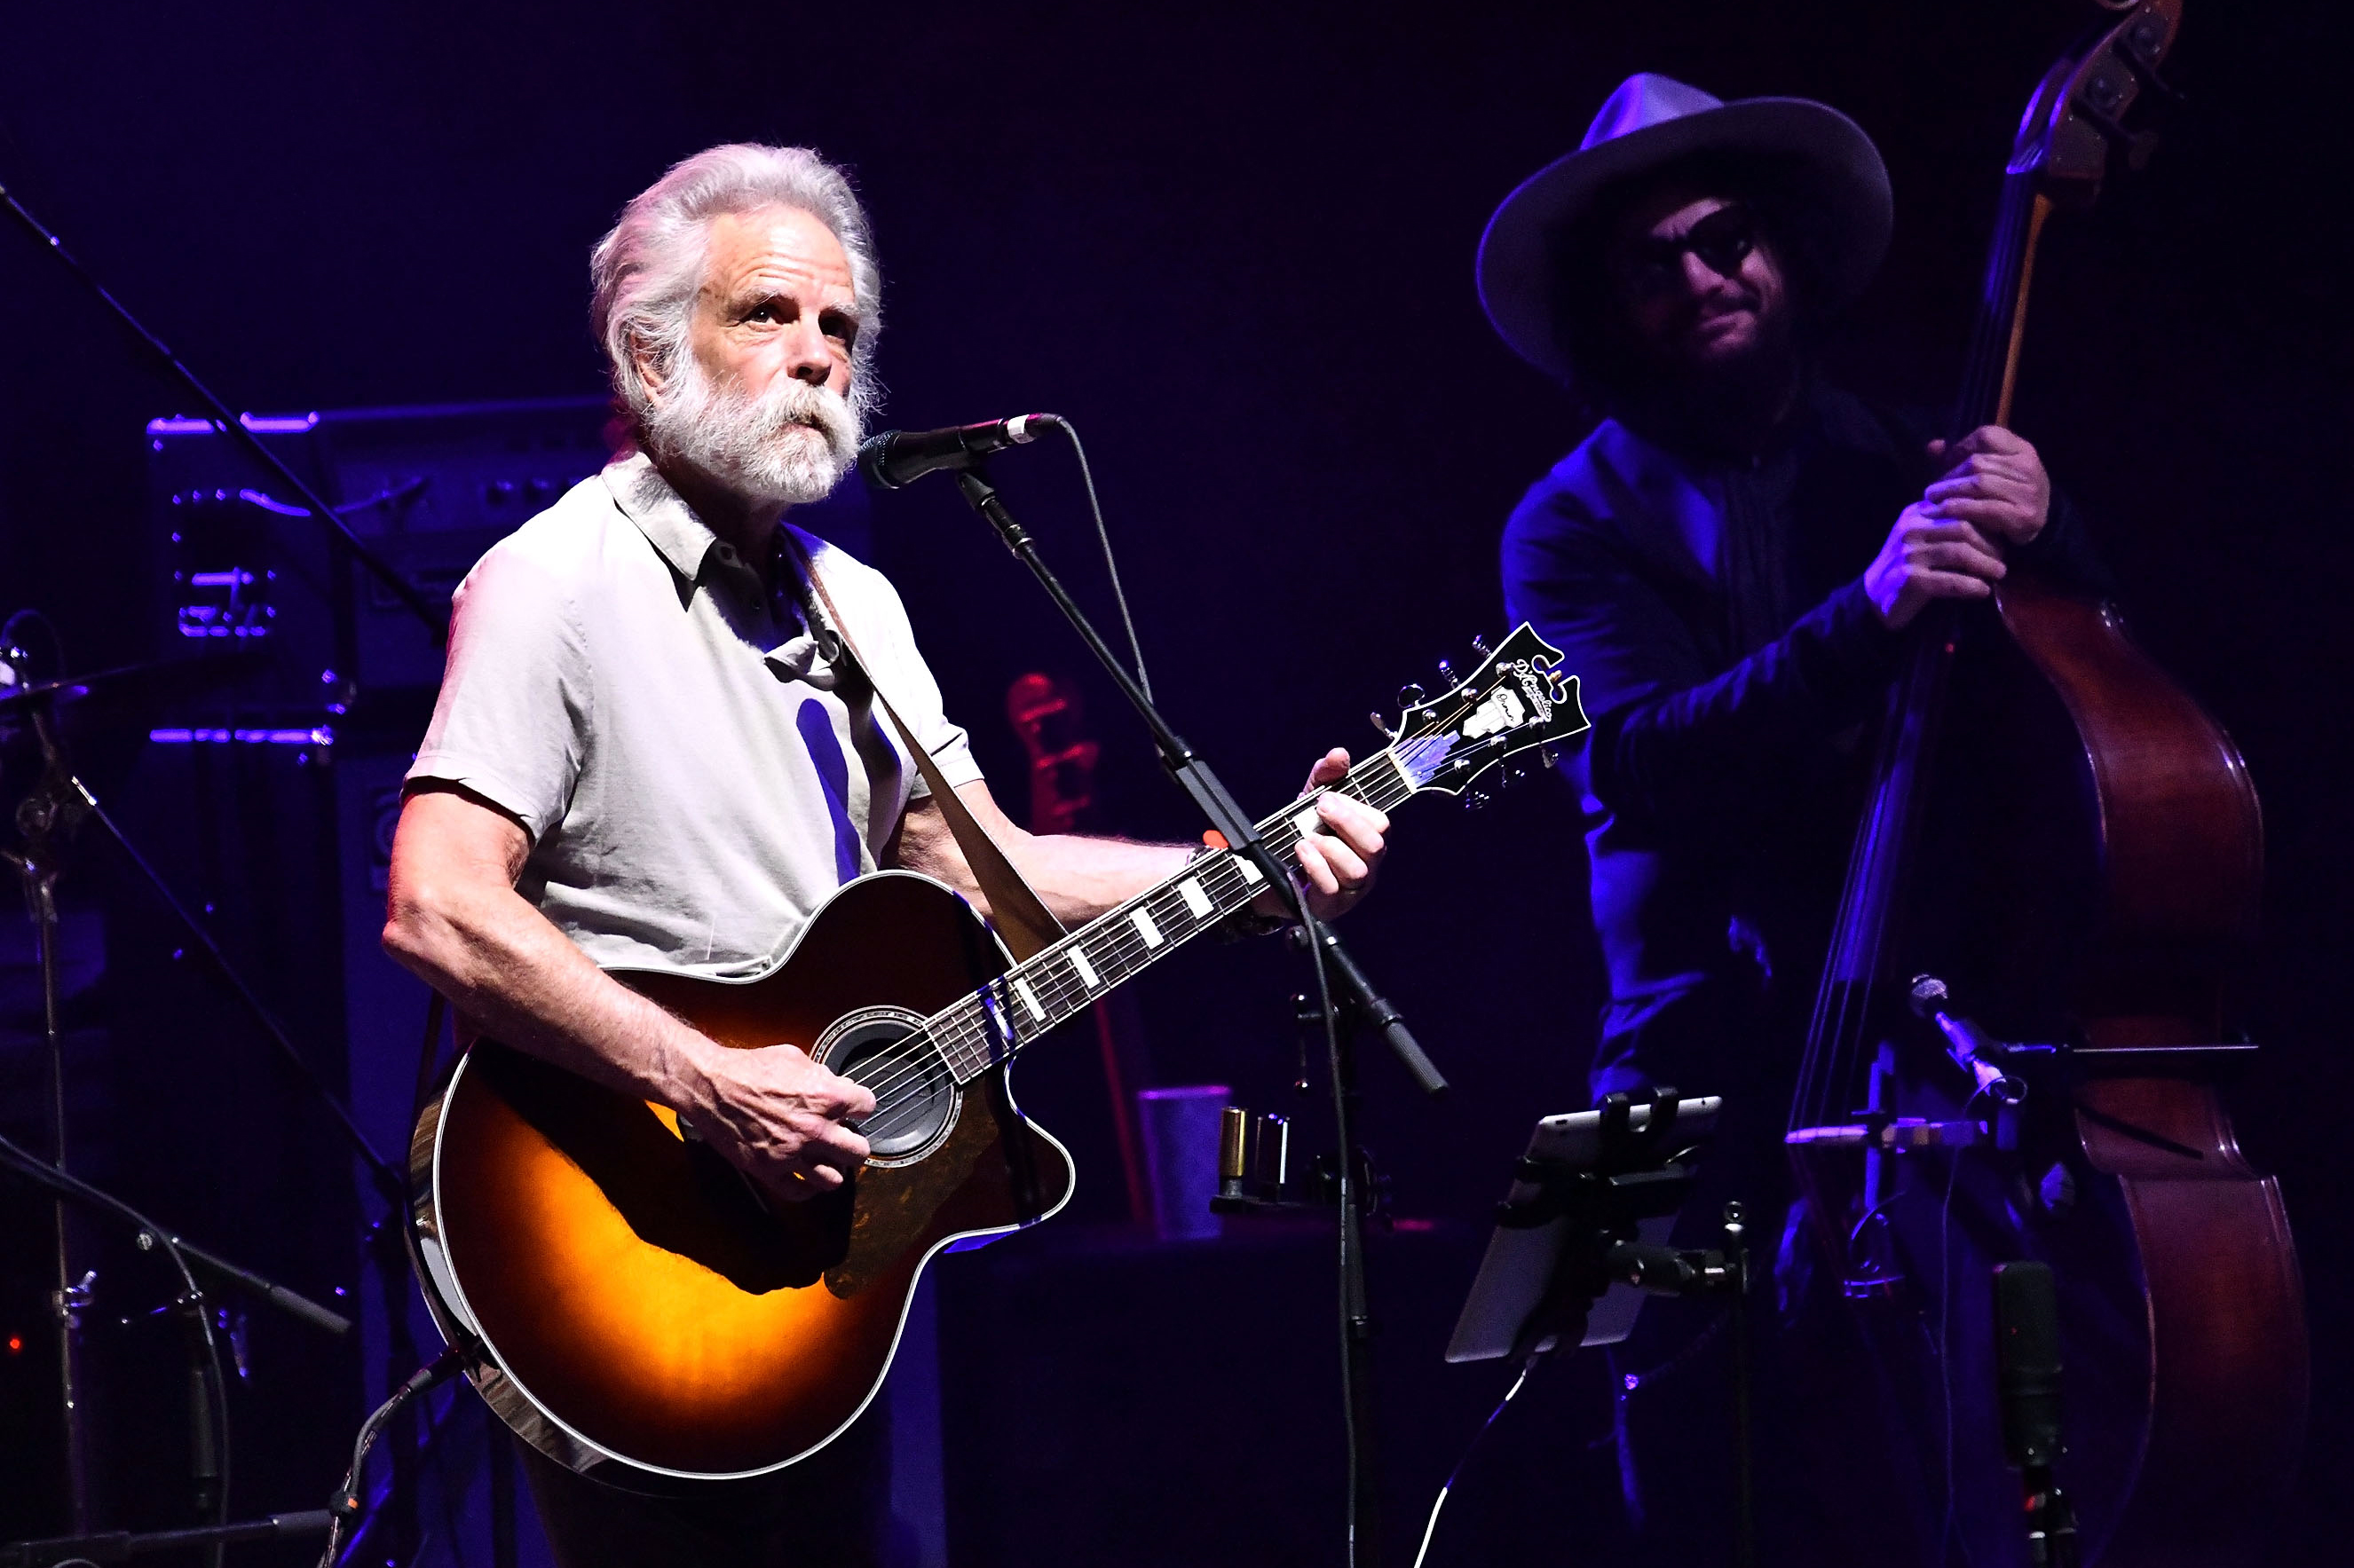 bob weir s wolf bros return to play grateful dead songs on spring tour rolling stone. Black Bedroom Furniture Sets. Home Design Ideas